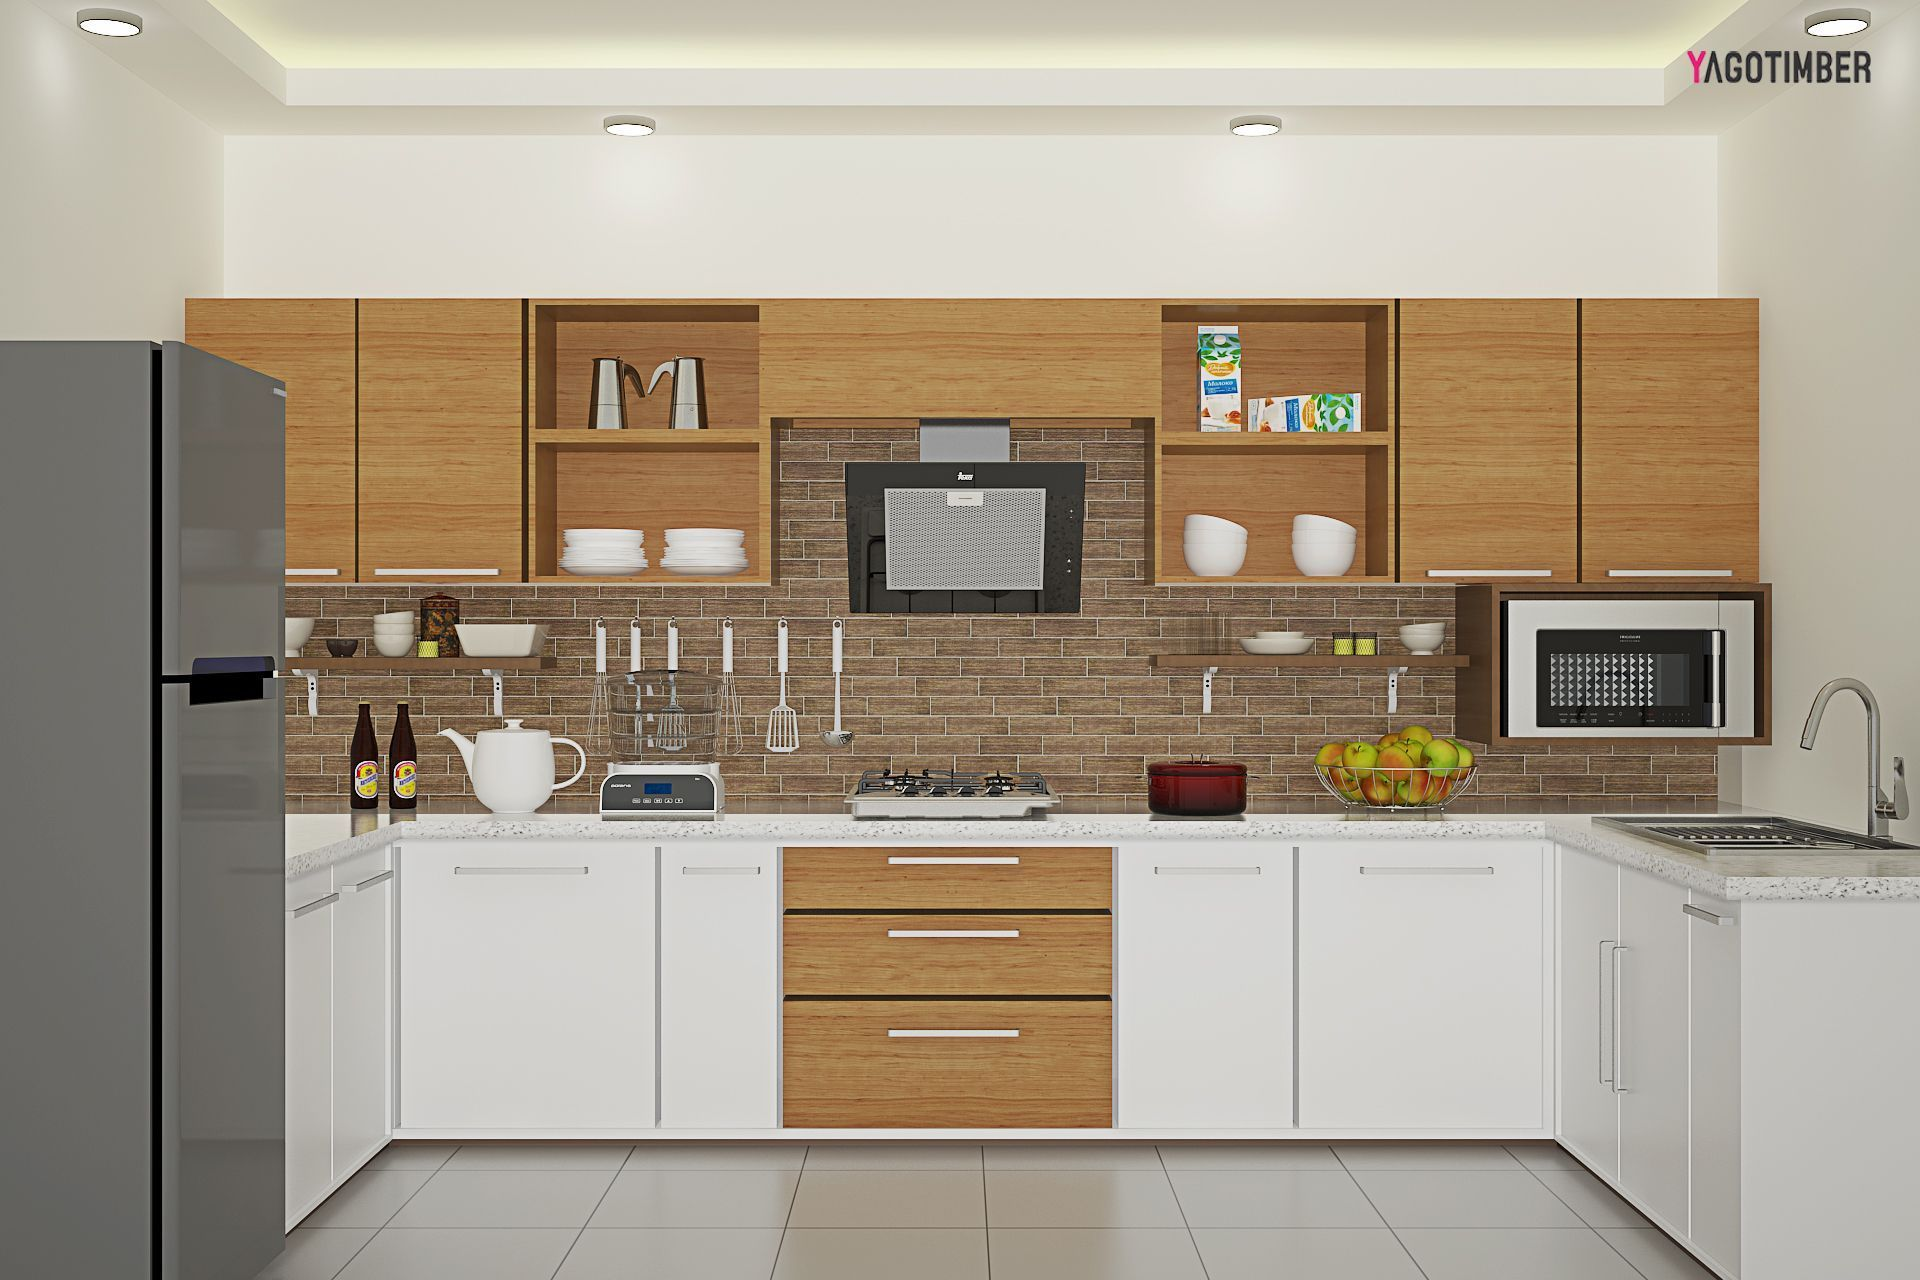 19 Fascinating Simple Kitchen Remodel Ideas Kitchen Remodel Small Kitchen Remodel Layout Simple Kitchen Remodel